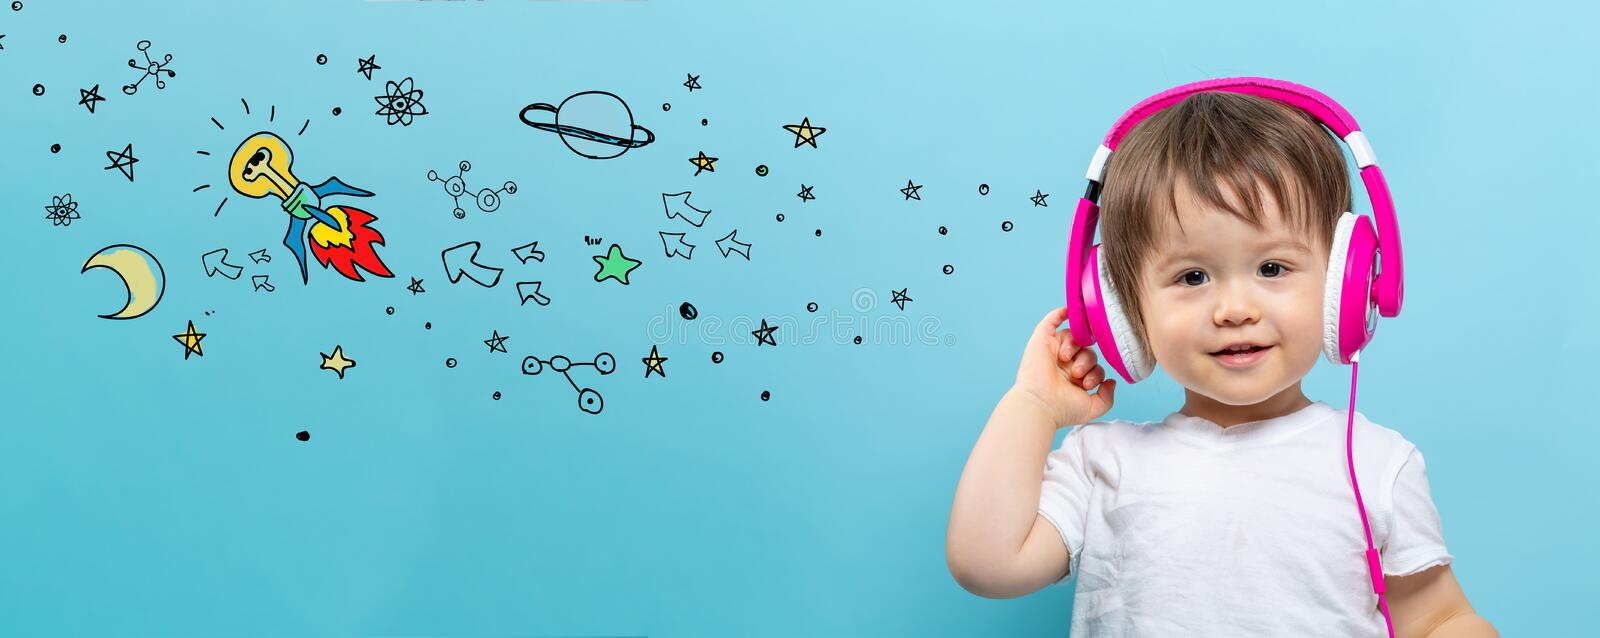 Idea rocket with toddler boy with headphones royalty free stock photos